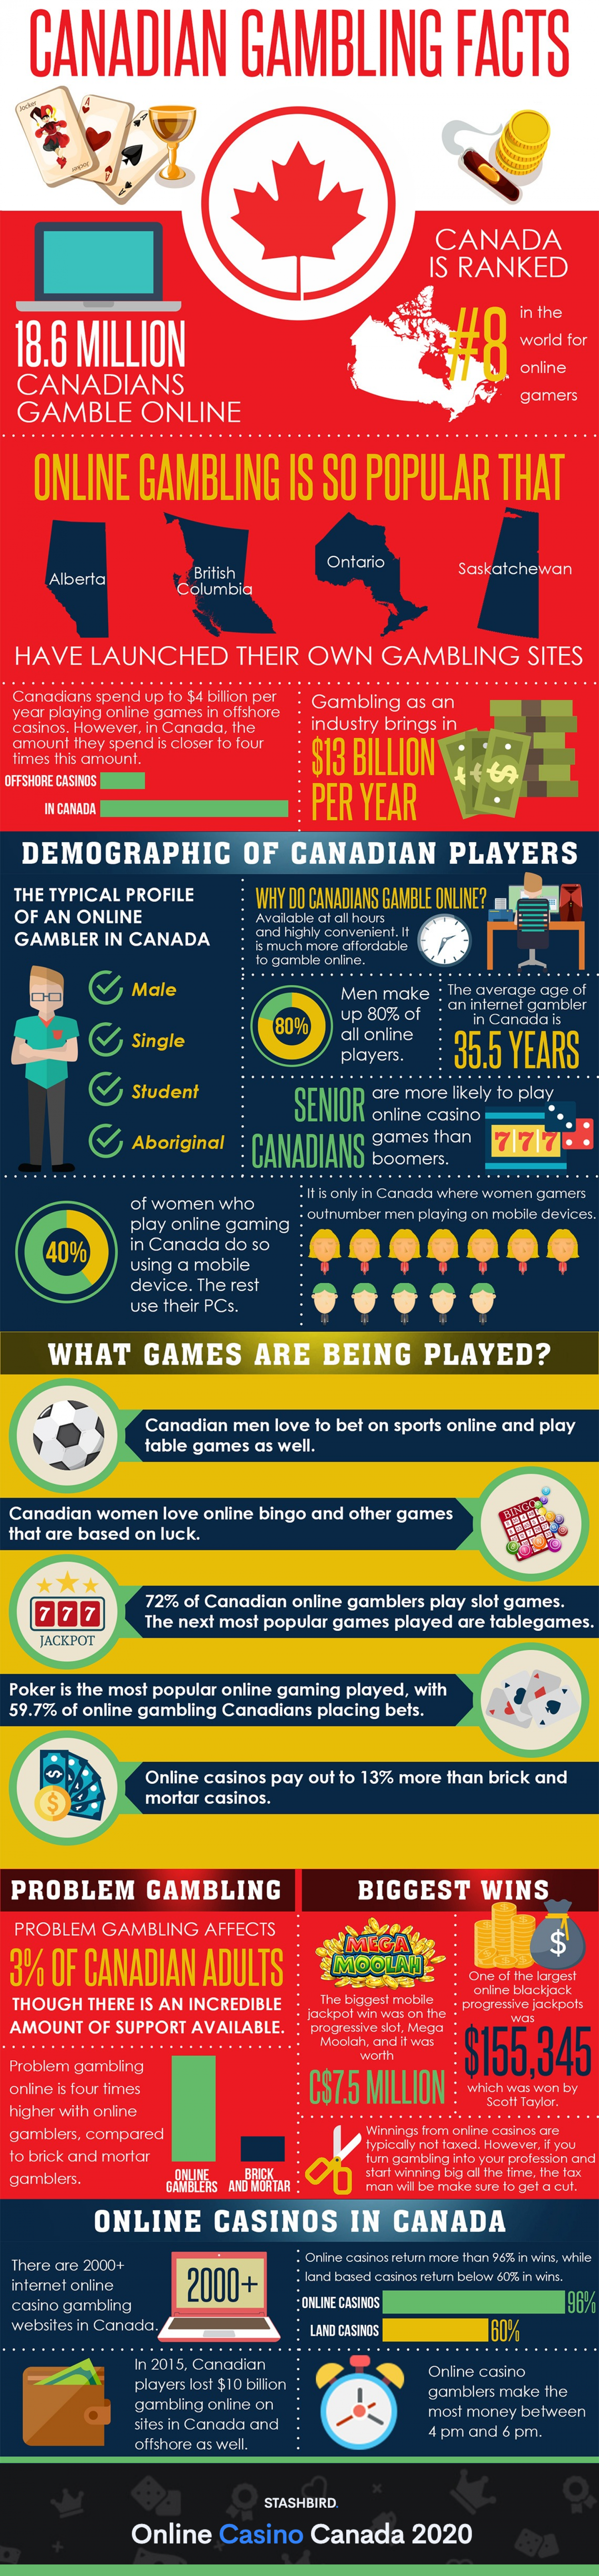 Facts Canadian Casinos Infographic